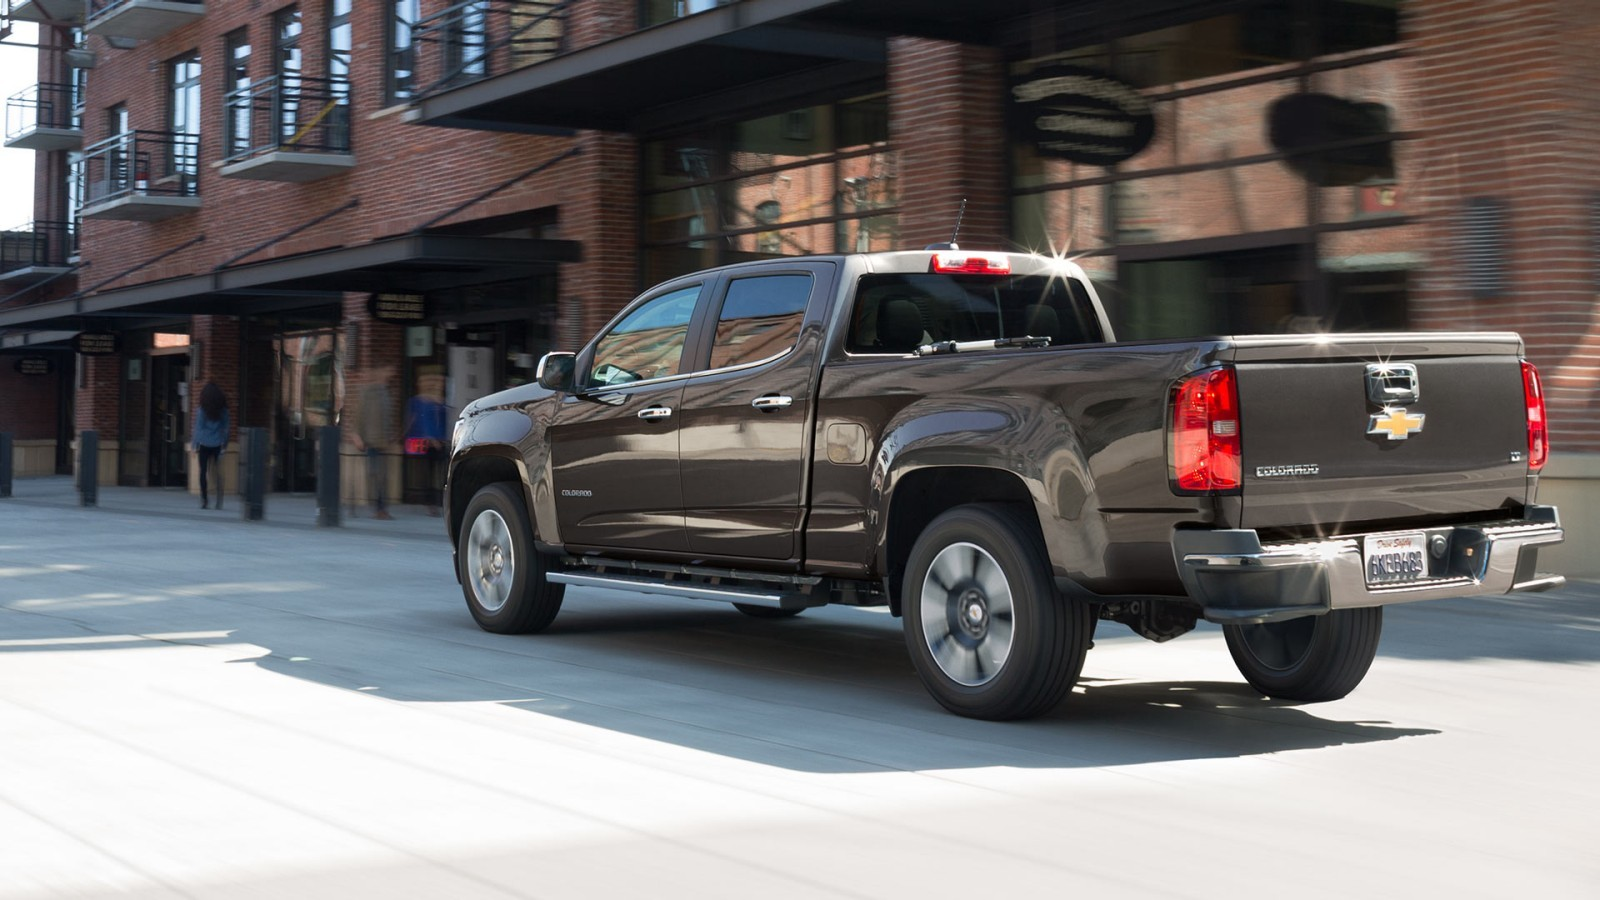 2016 Chevrolet Colorado near Everett at Chuck Olson Chevrolet